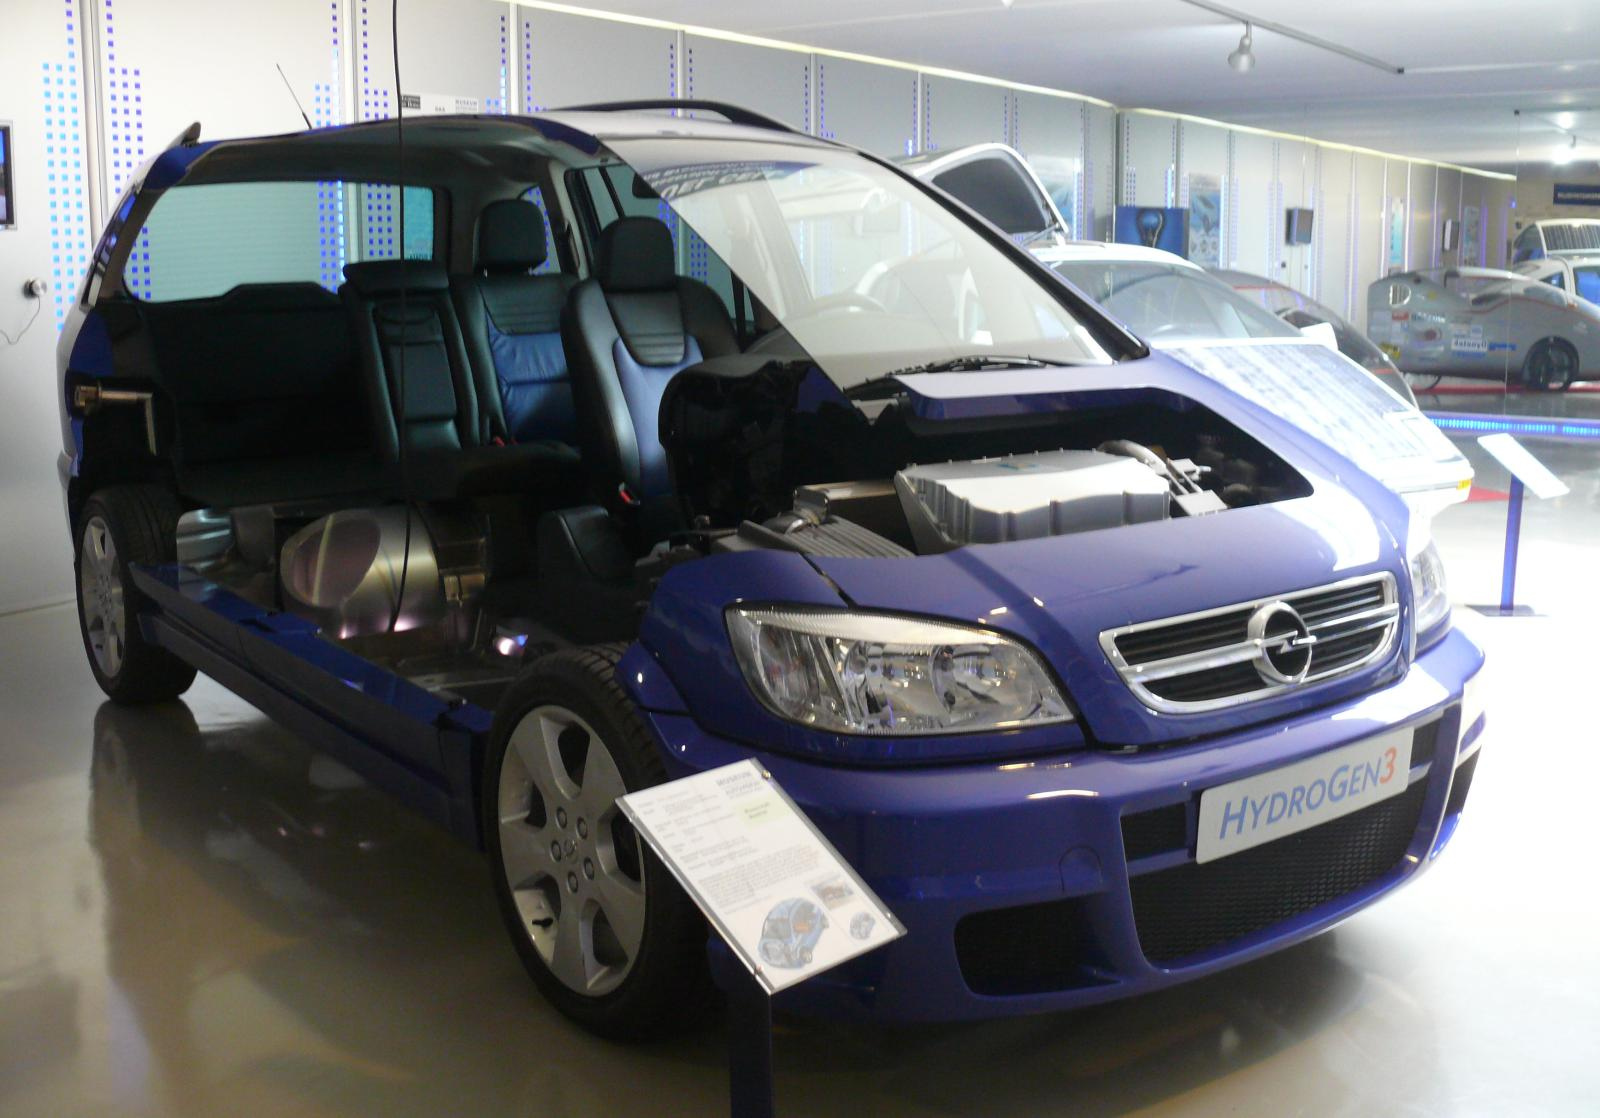 Opel Zafira 2004 Hydrogen 3 Cut-Out blue vr | Flickr - Photo Sharing!